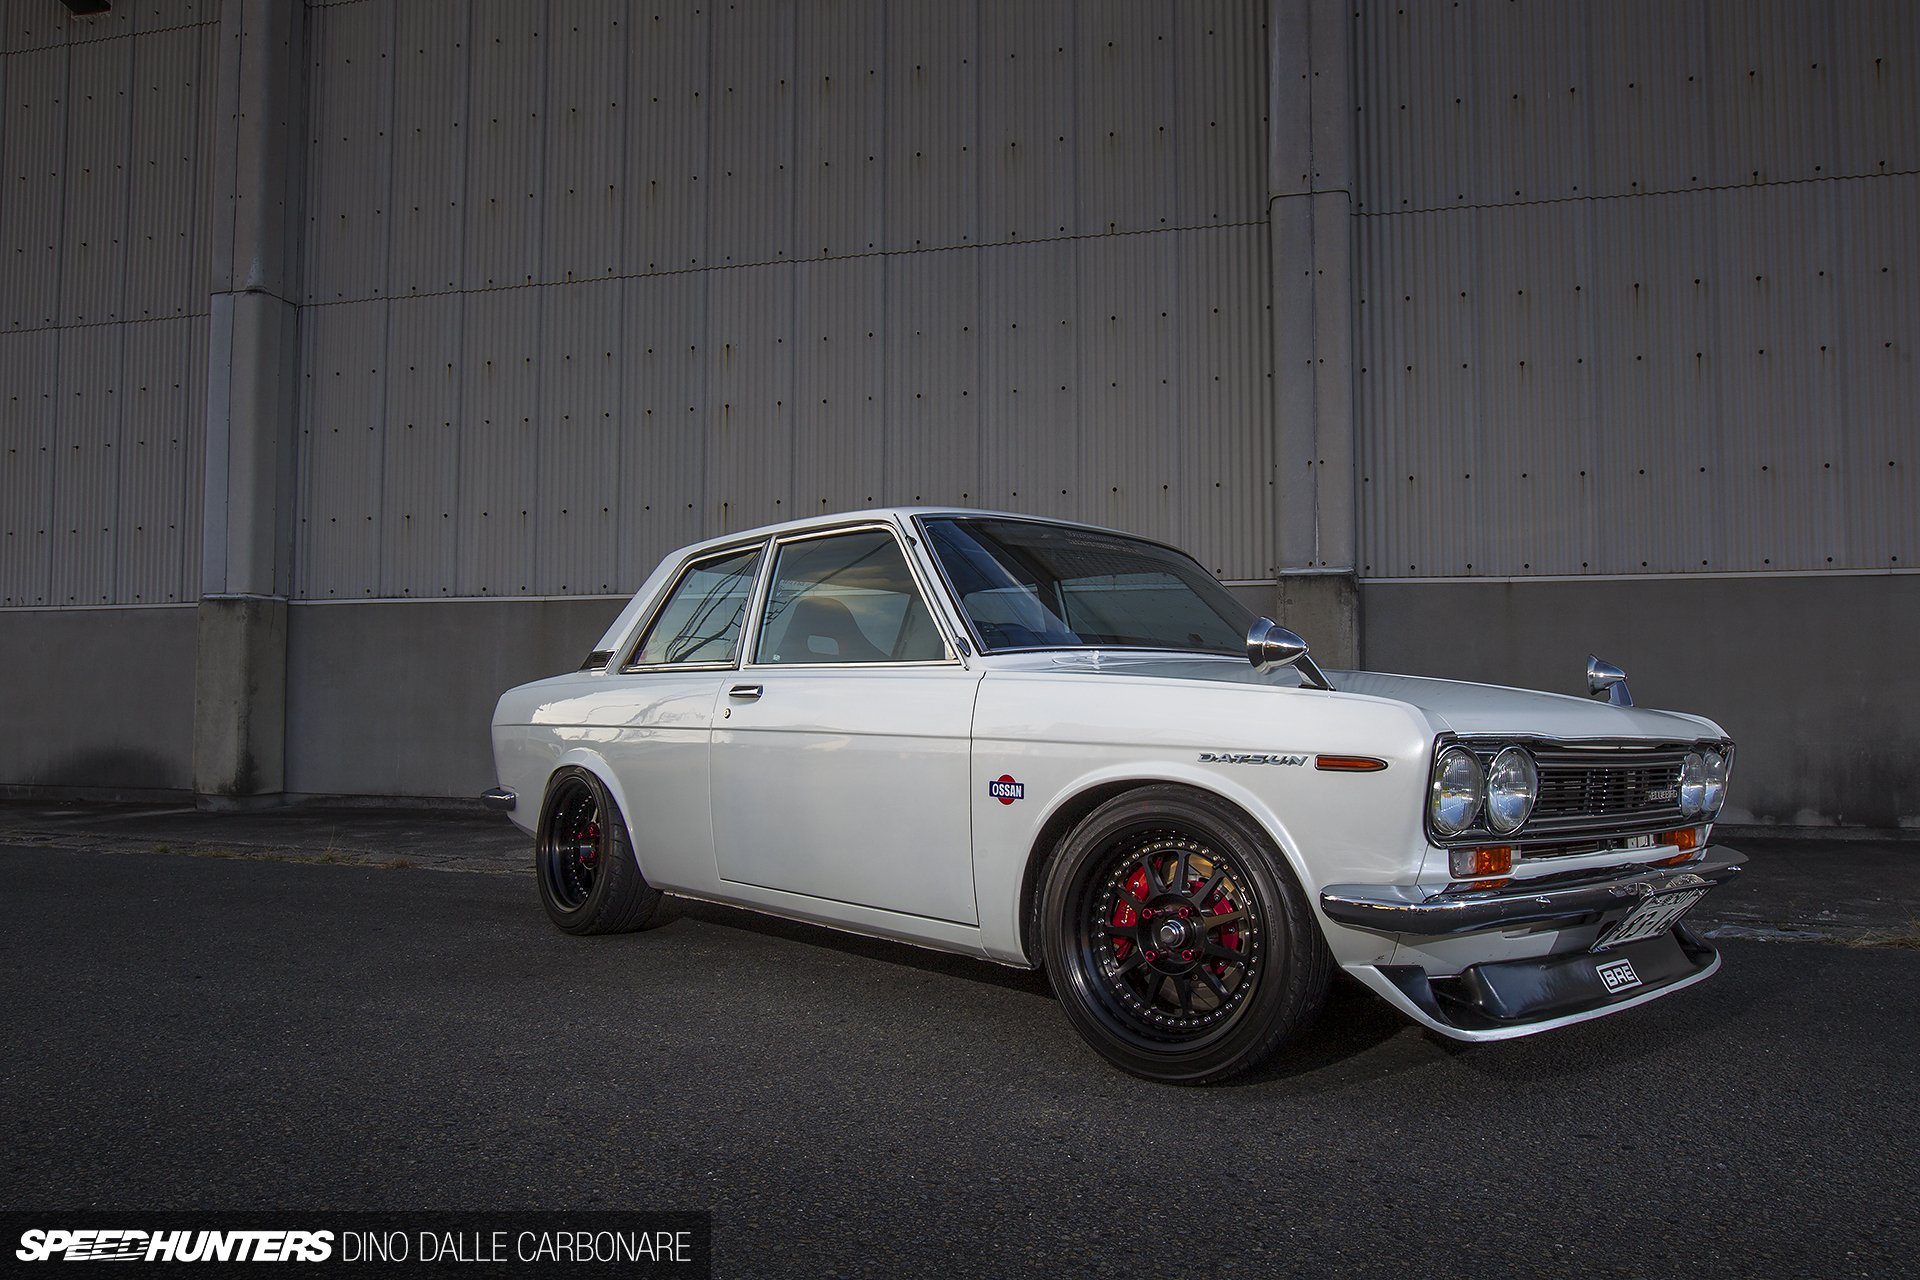 Datsun 510 Bluebird Coupe tuning f wallpaper 1920x1280 1920x1280